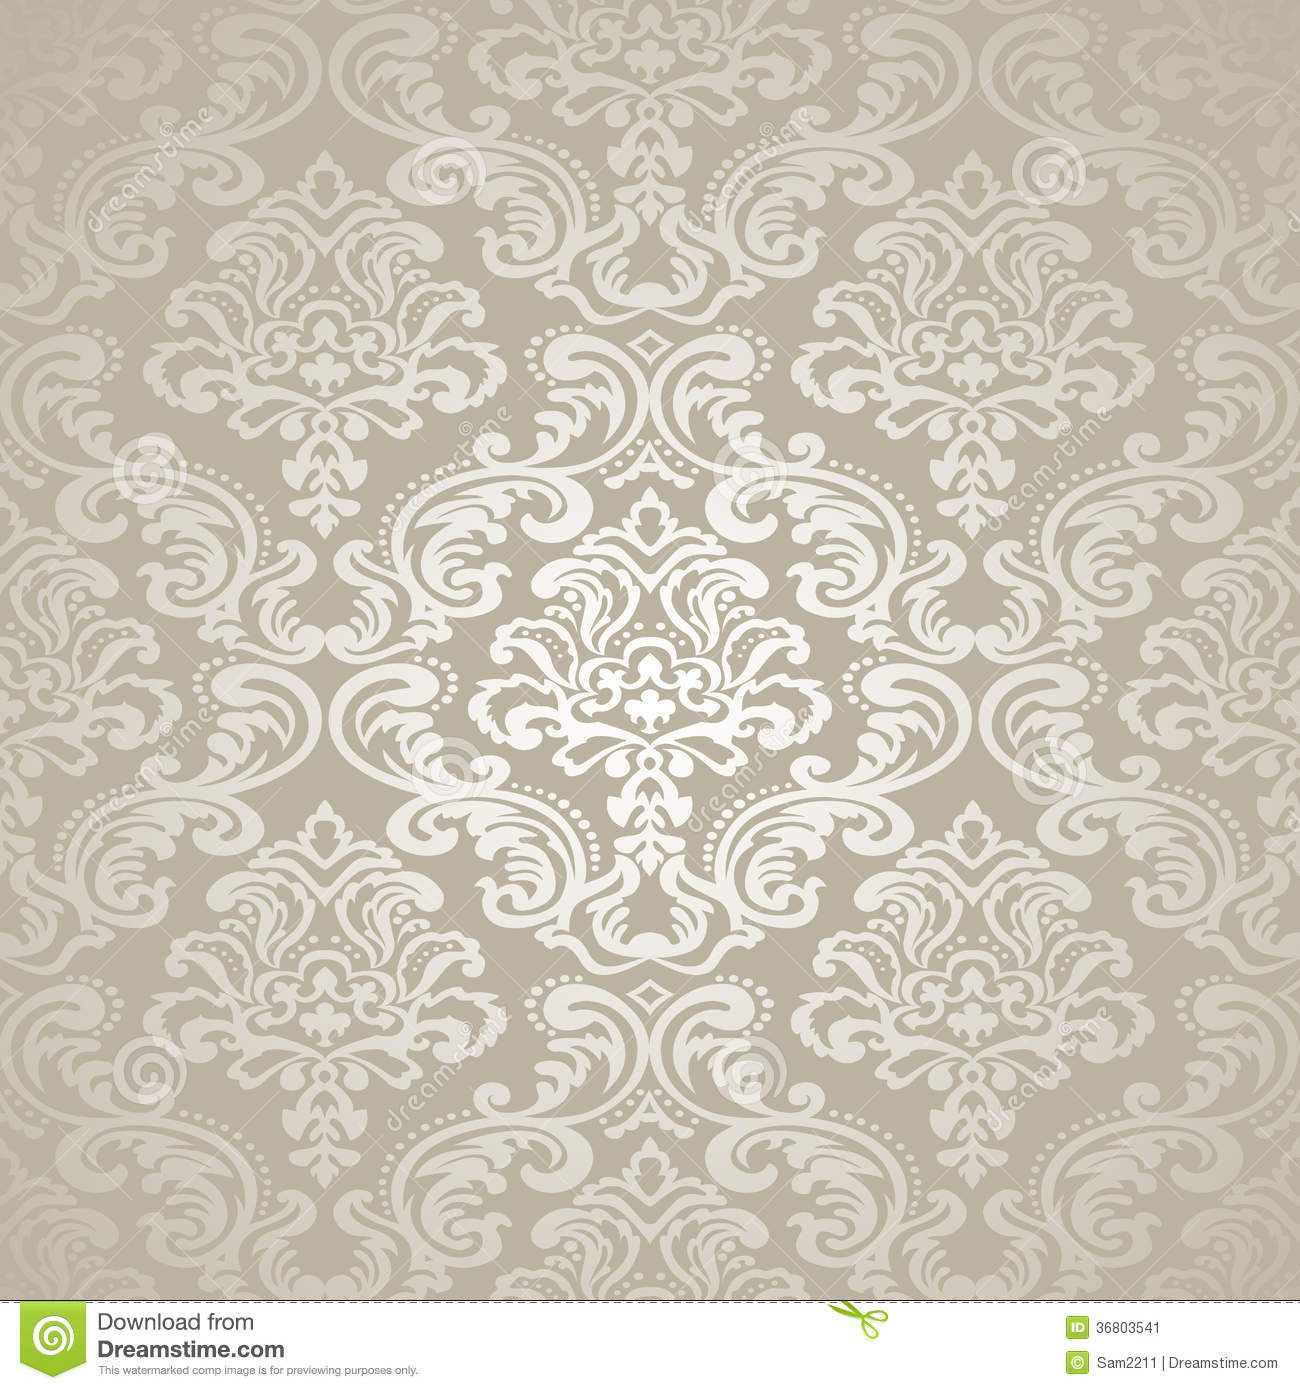 Papel Para Revestir Paredes Nahtlose Tapete Des Muster Background Damask Stockbild